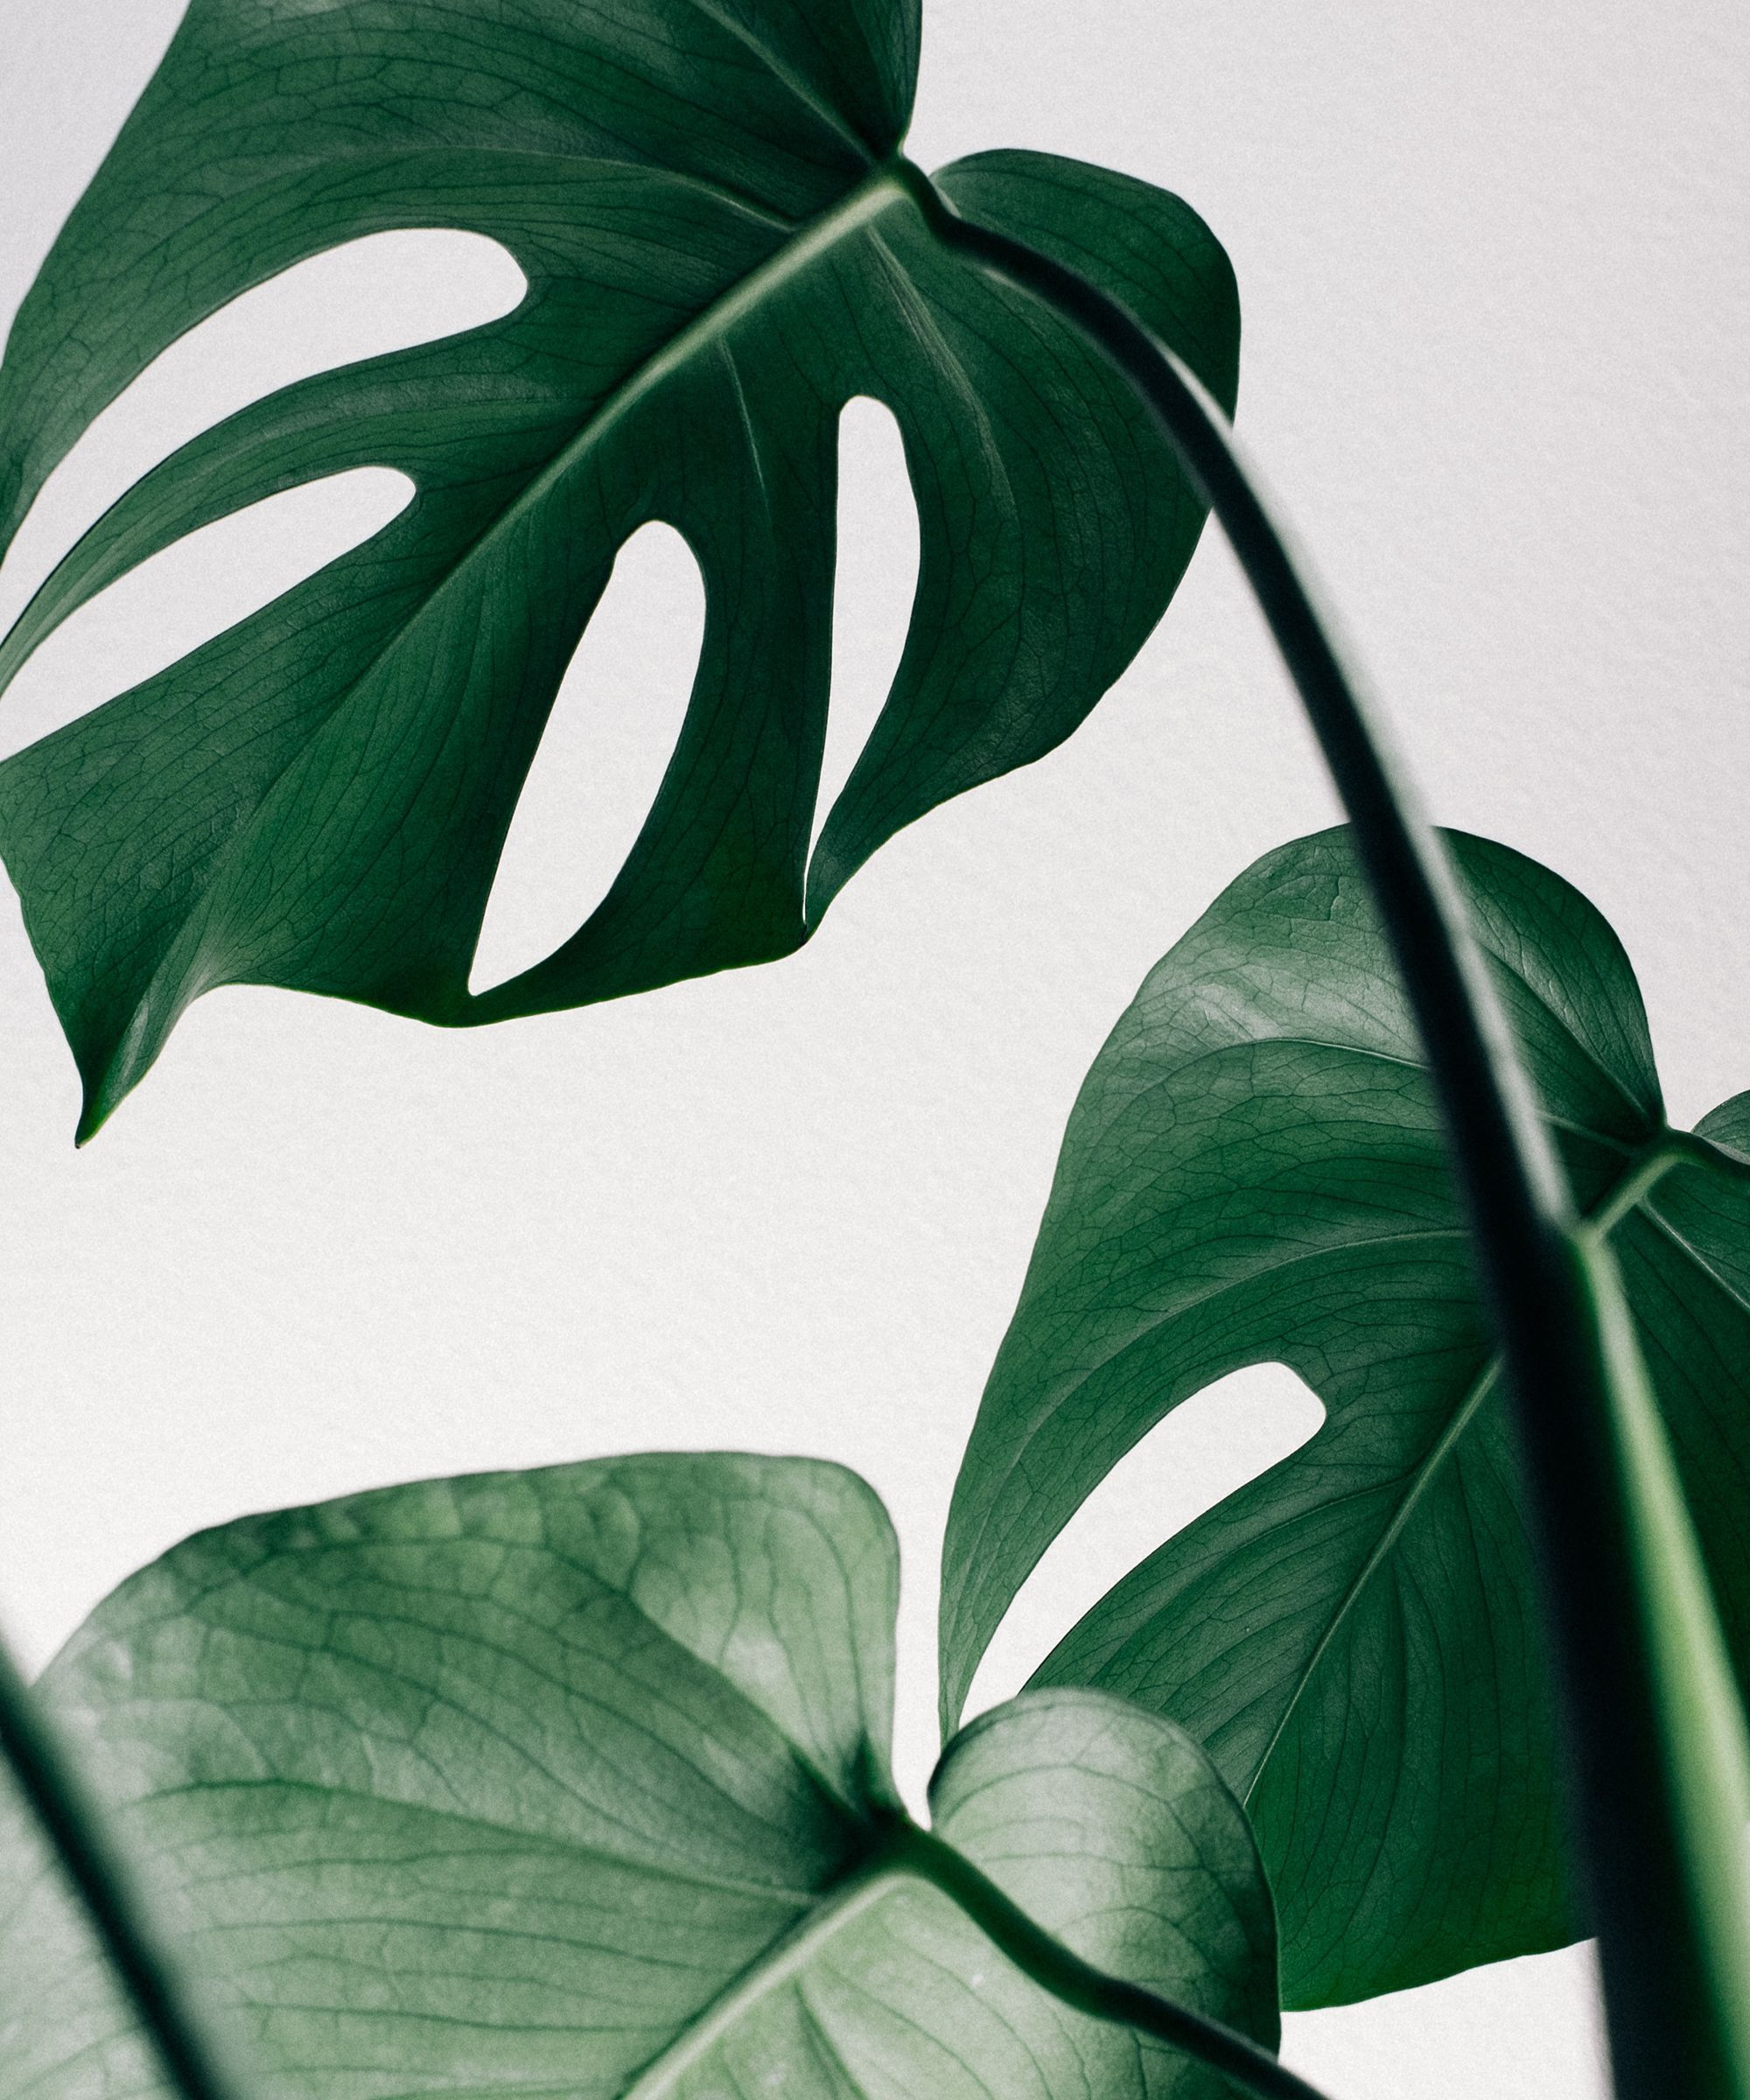 Best Cool House Plants - How To Care #plants